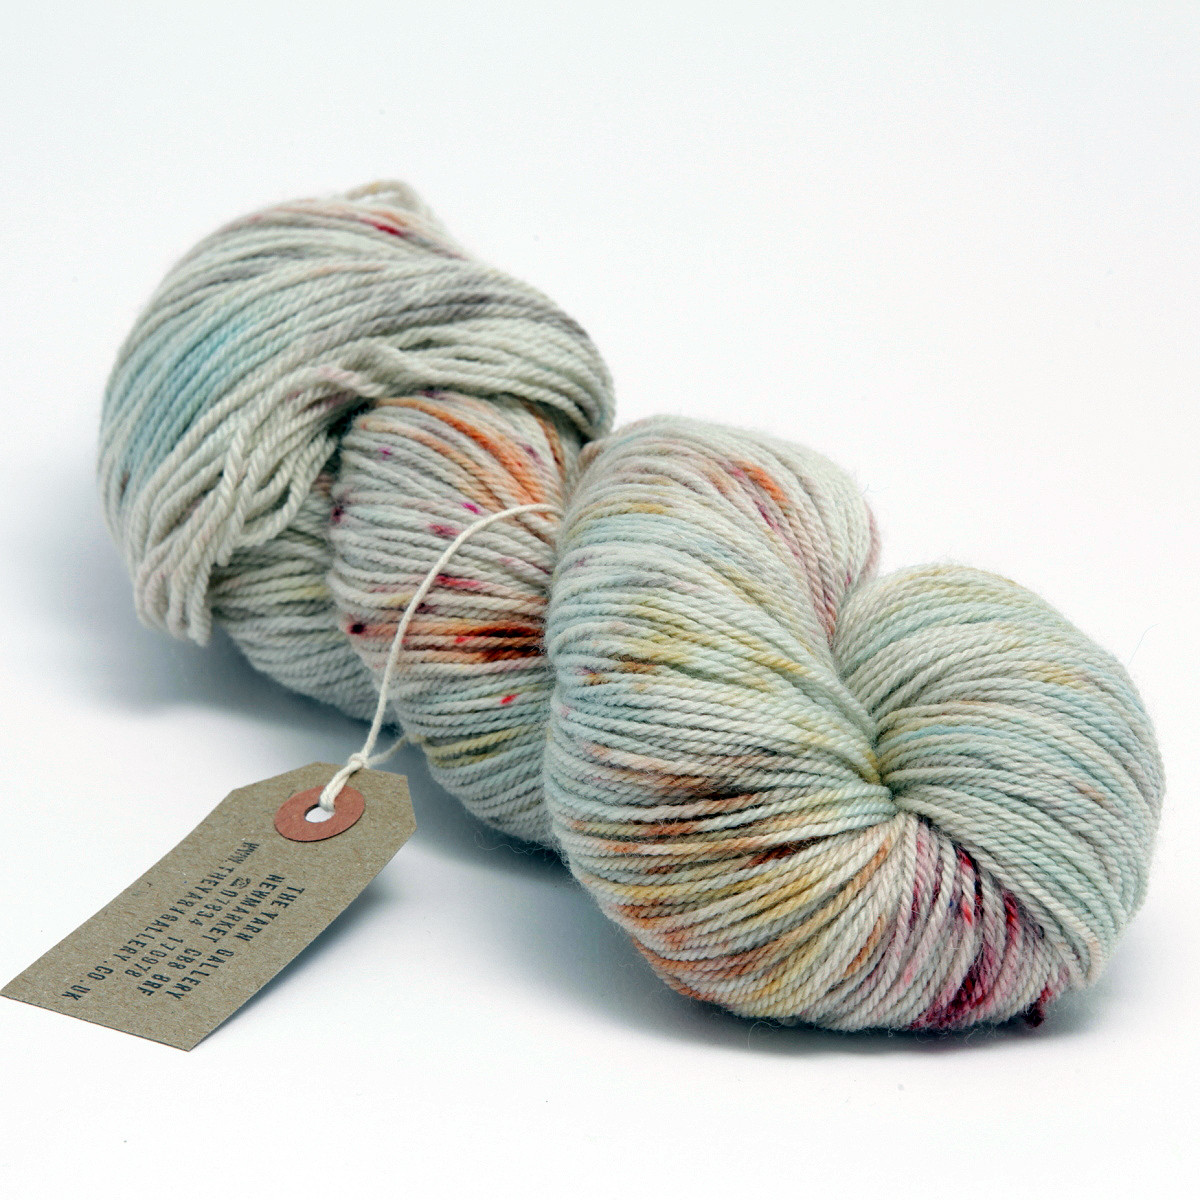 Beautiful soccus Tapestry Speckled the Yarn Gallery Yarn Companies Of Great 45 Images Yarn Companies